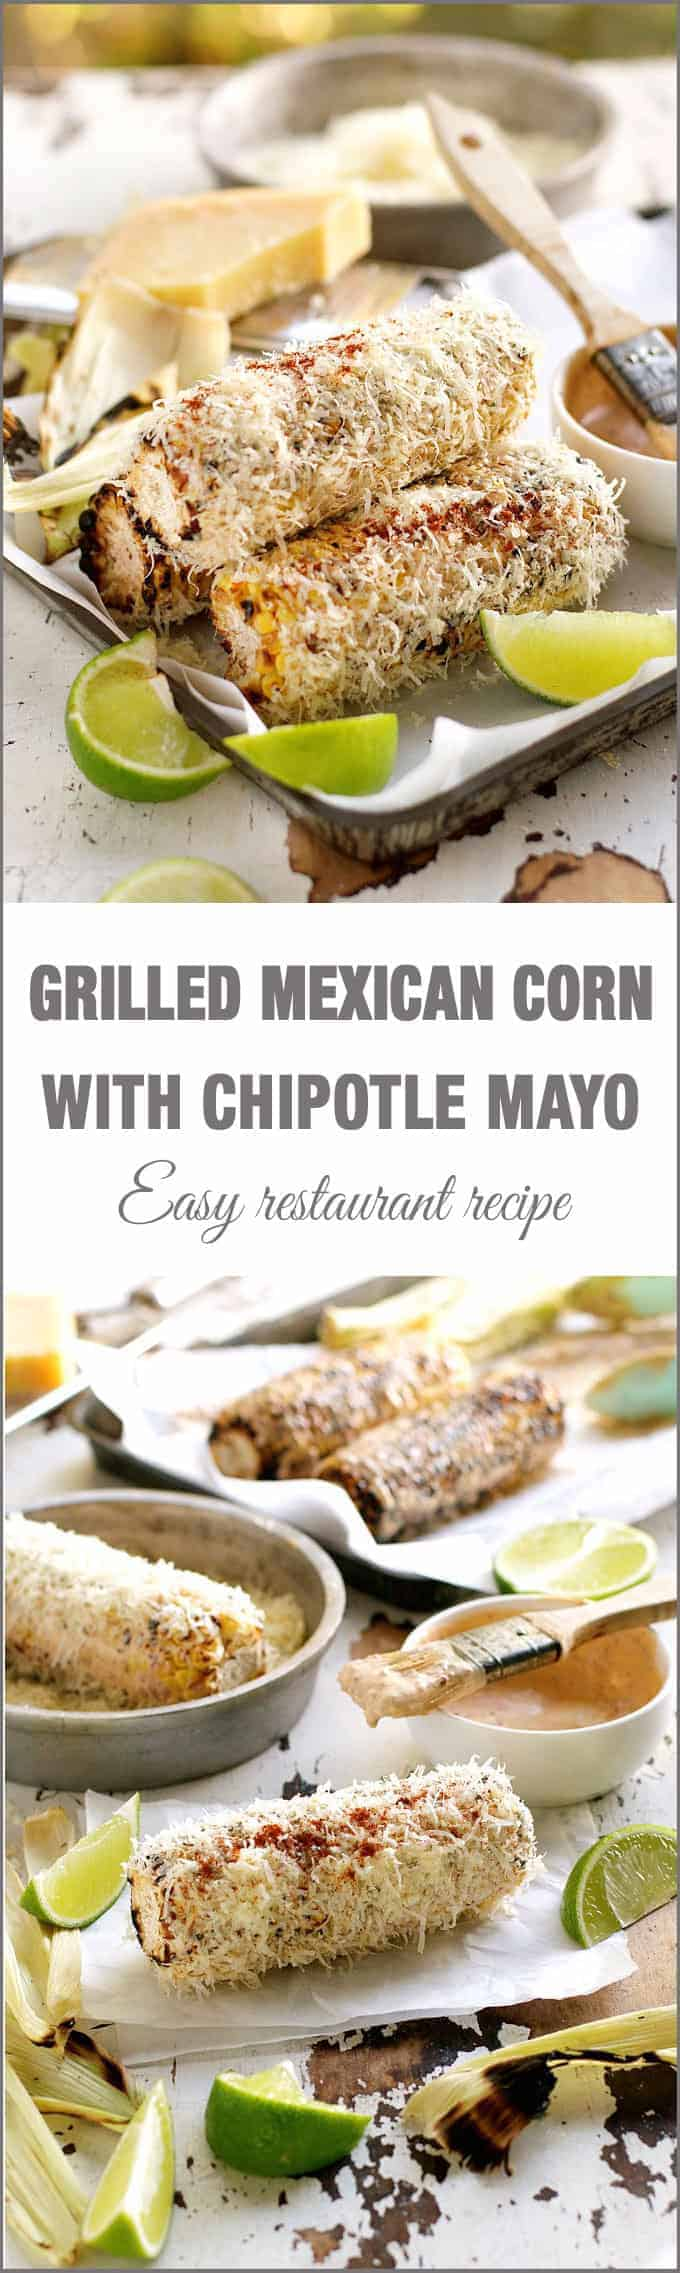 Grilled Corn with Chipotle Adobo Mayo (Restaurant Copycat) - this is the best corn I have ever had in my life. Grilling and stovetop instructions included.